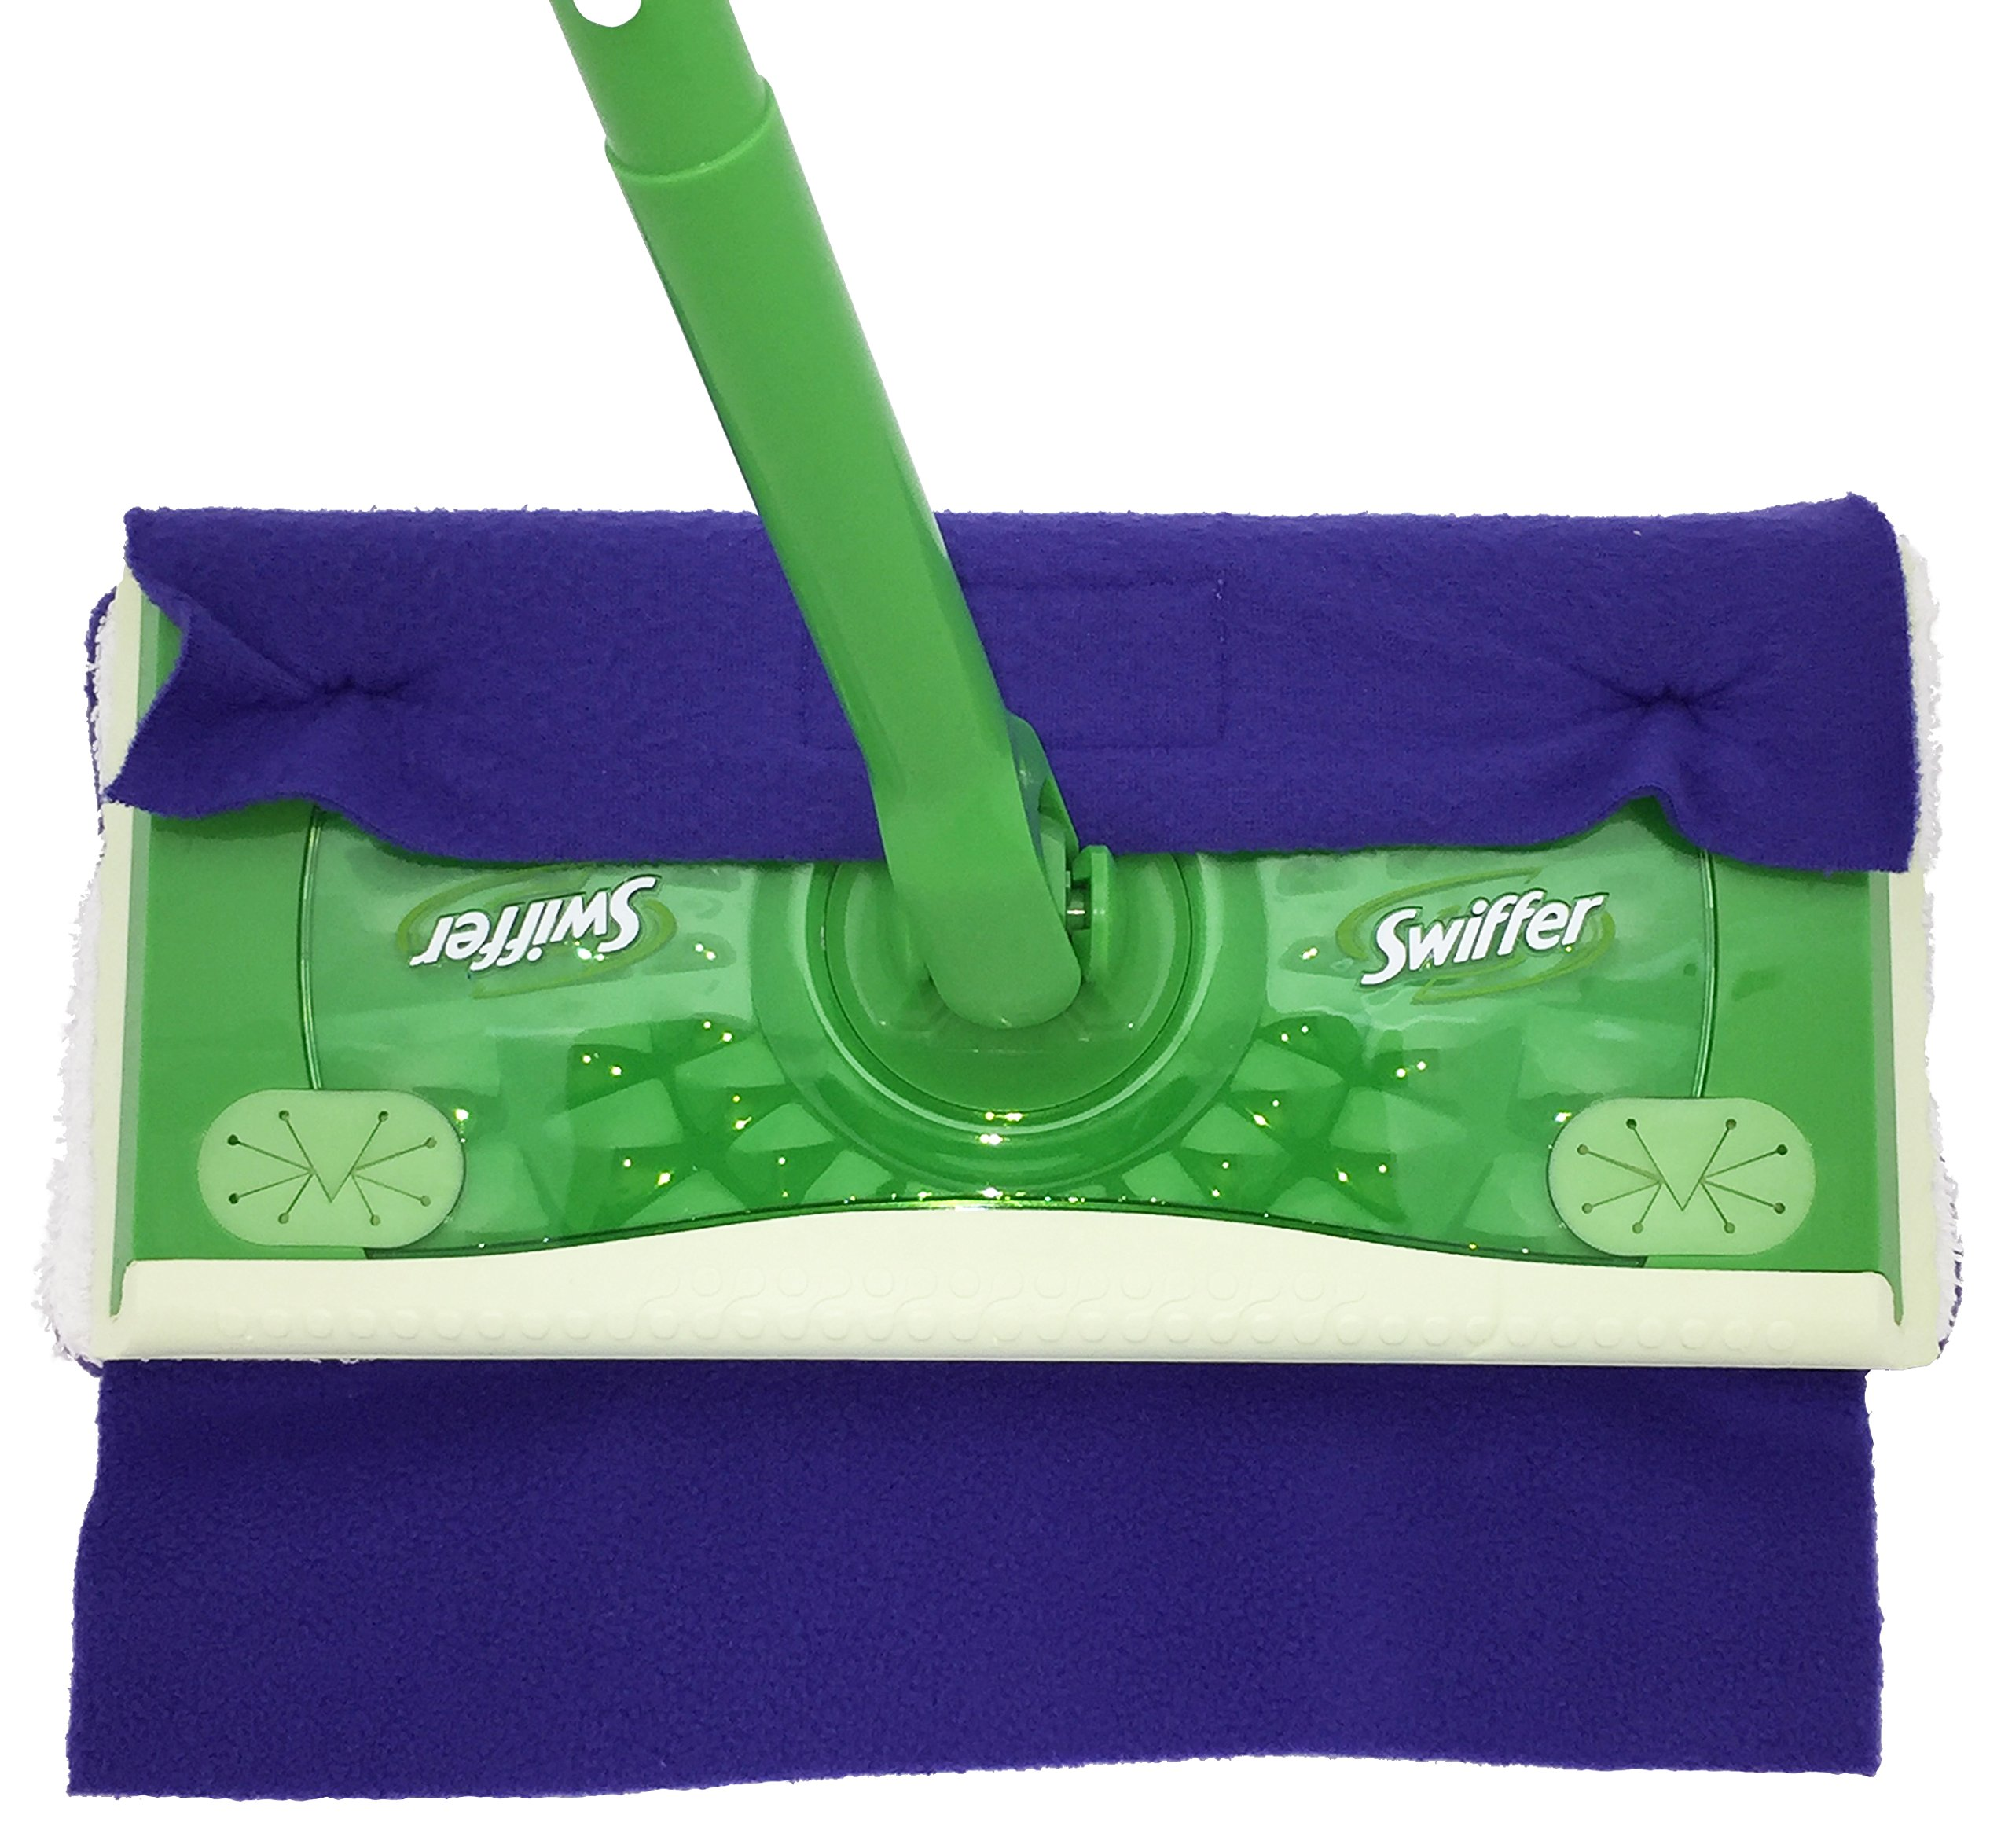 Wet Mop Pads for Sweeper - 2 Sided Fleece & Terry Cloth - Washable Reusable by Xanitize (4-Pack) (Standard, Purple, Blue, Green, Pink) by Xanitize (Image #4)